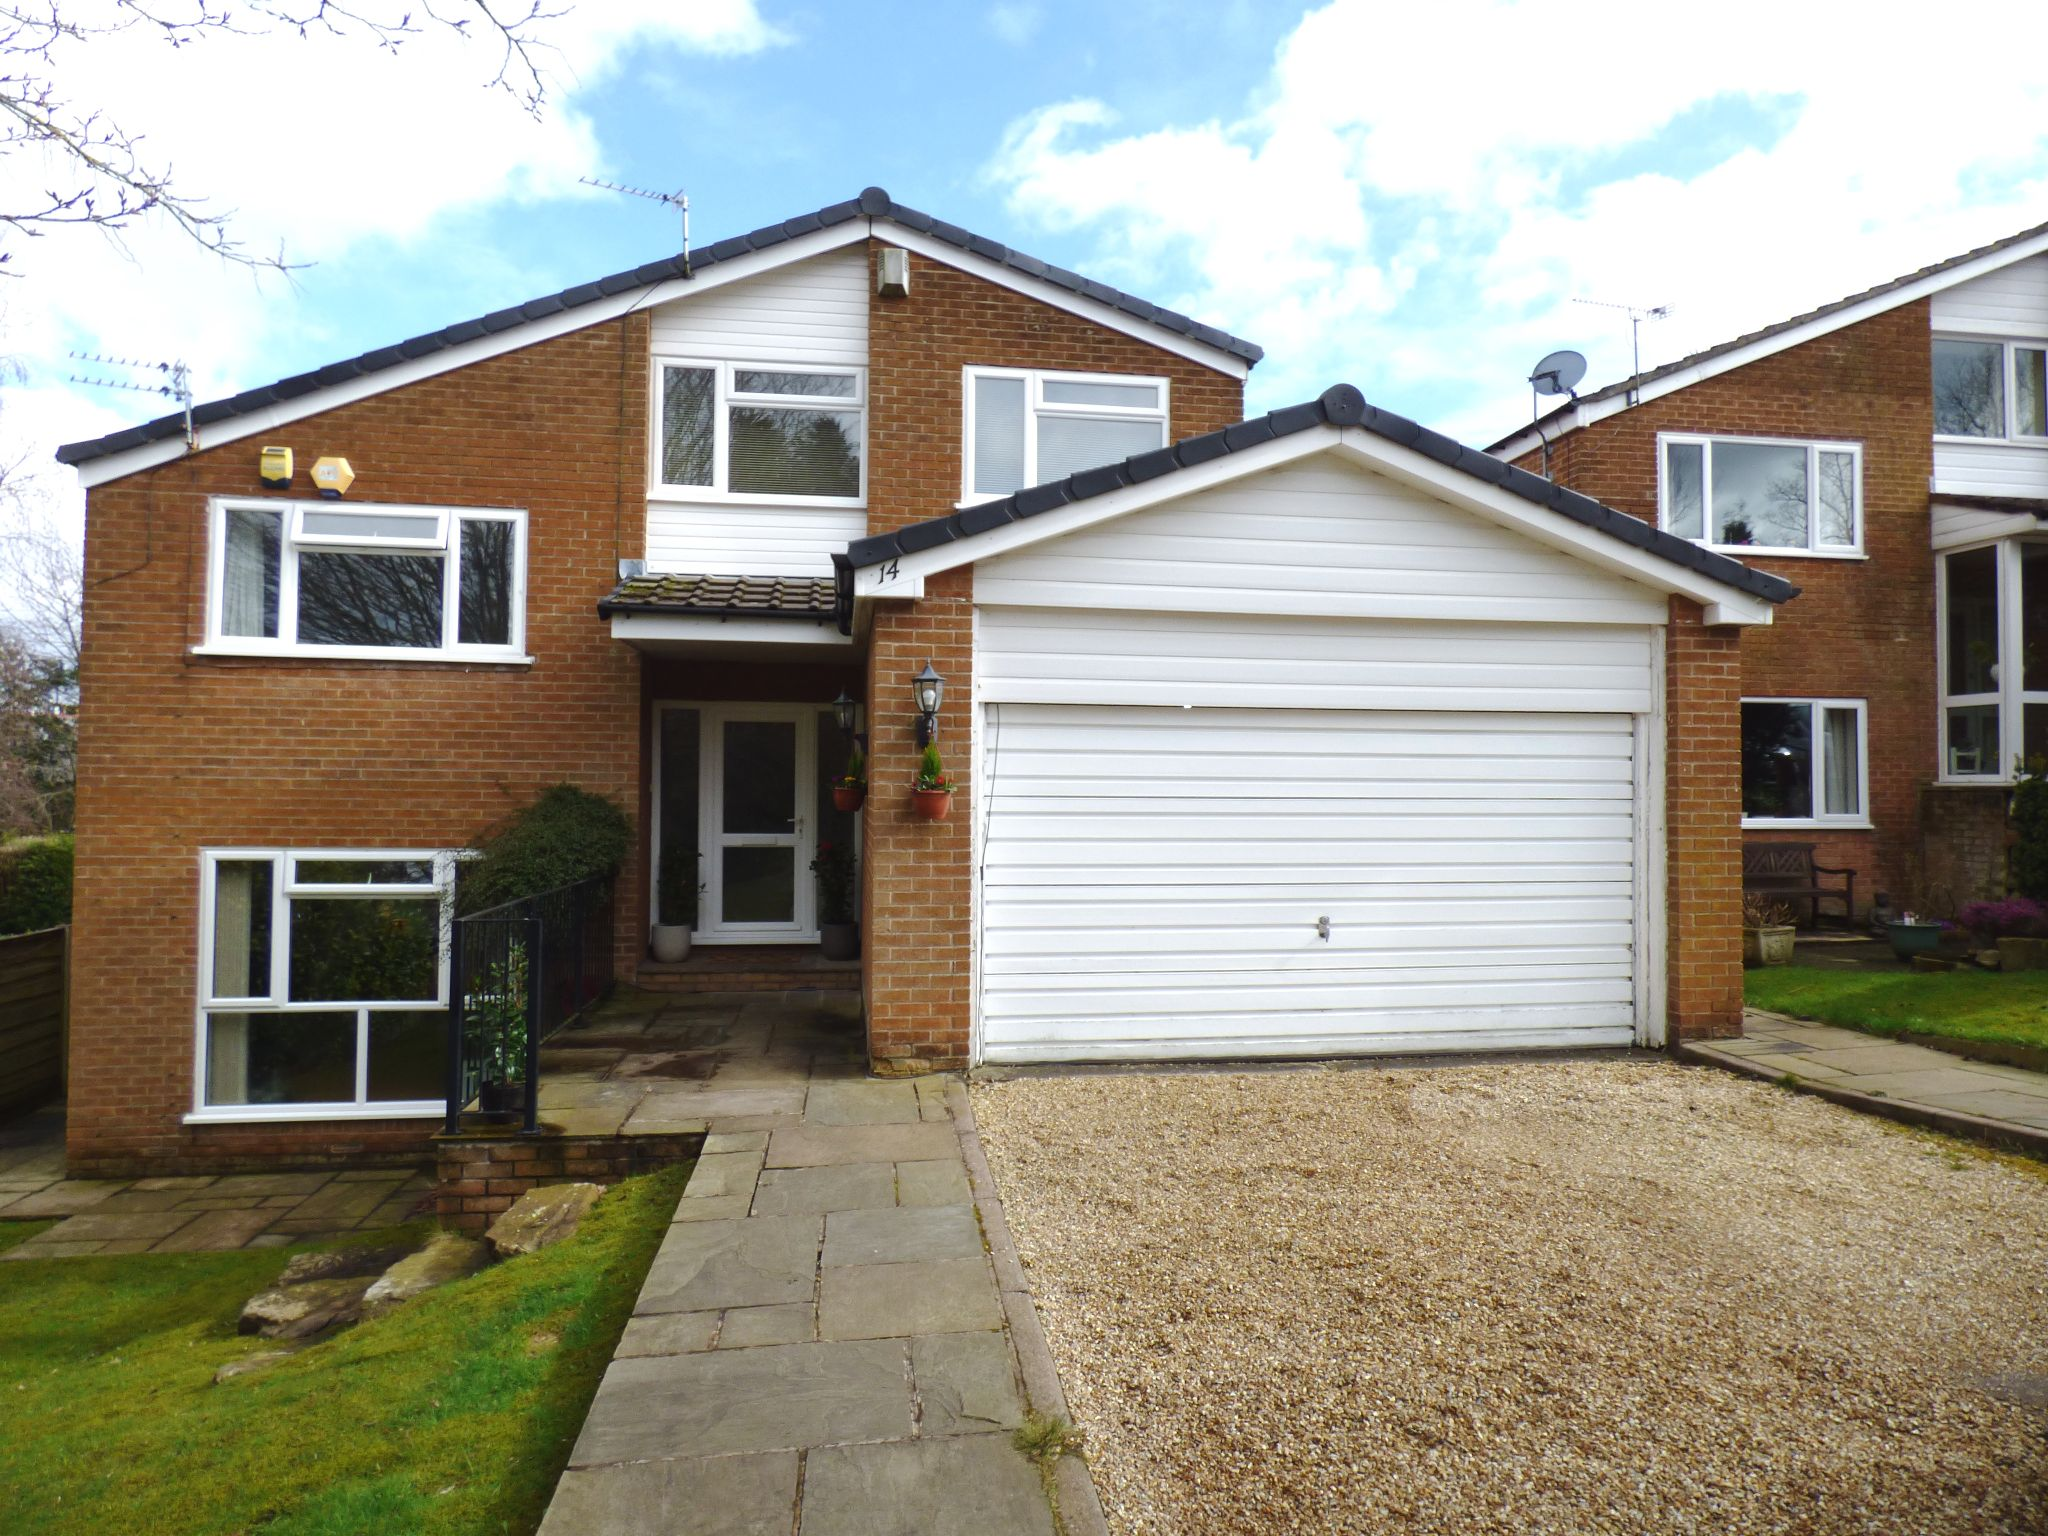 5 Bedroom Detached House For Sale - Front External